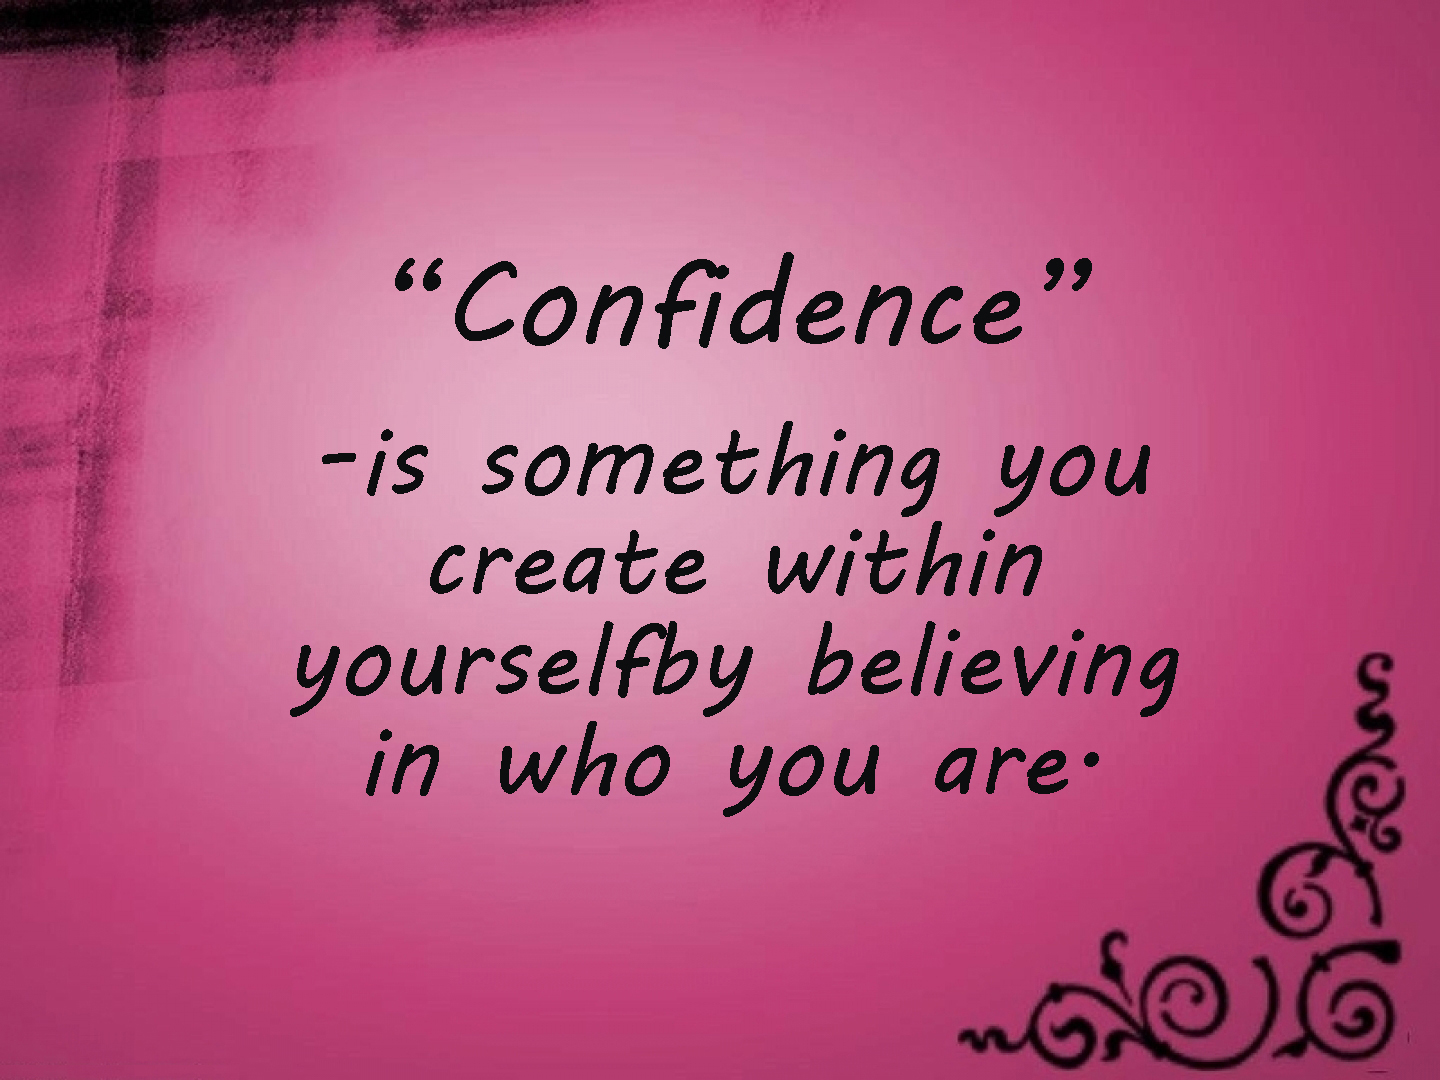 confidence-is-something-you-create-within-yourself-believing-in-who-you-are-confidence-quote